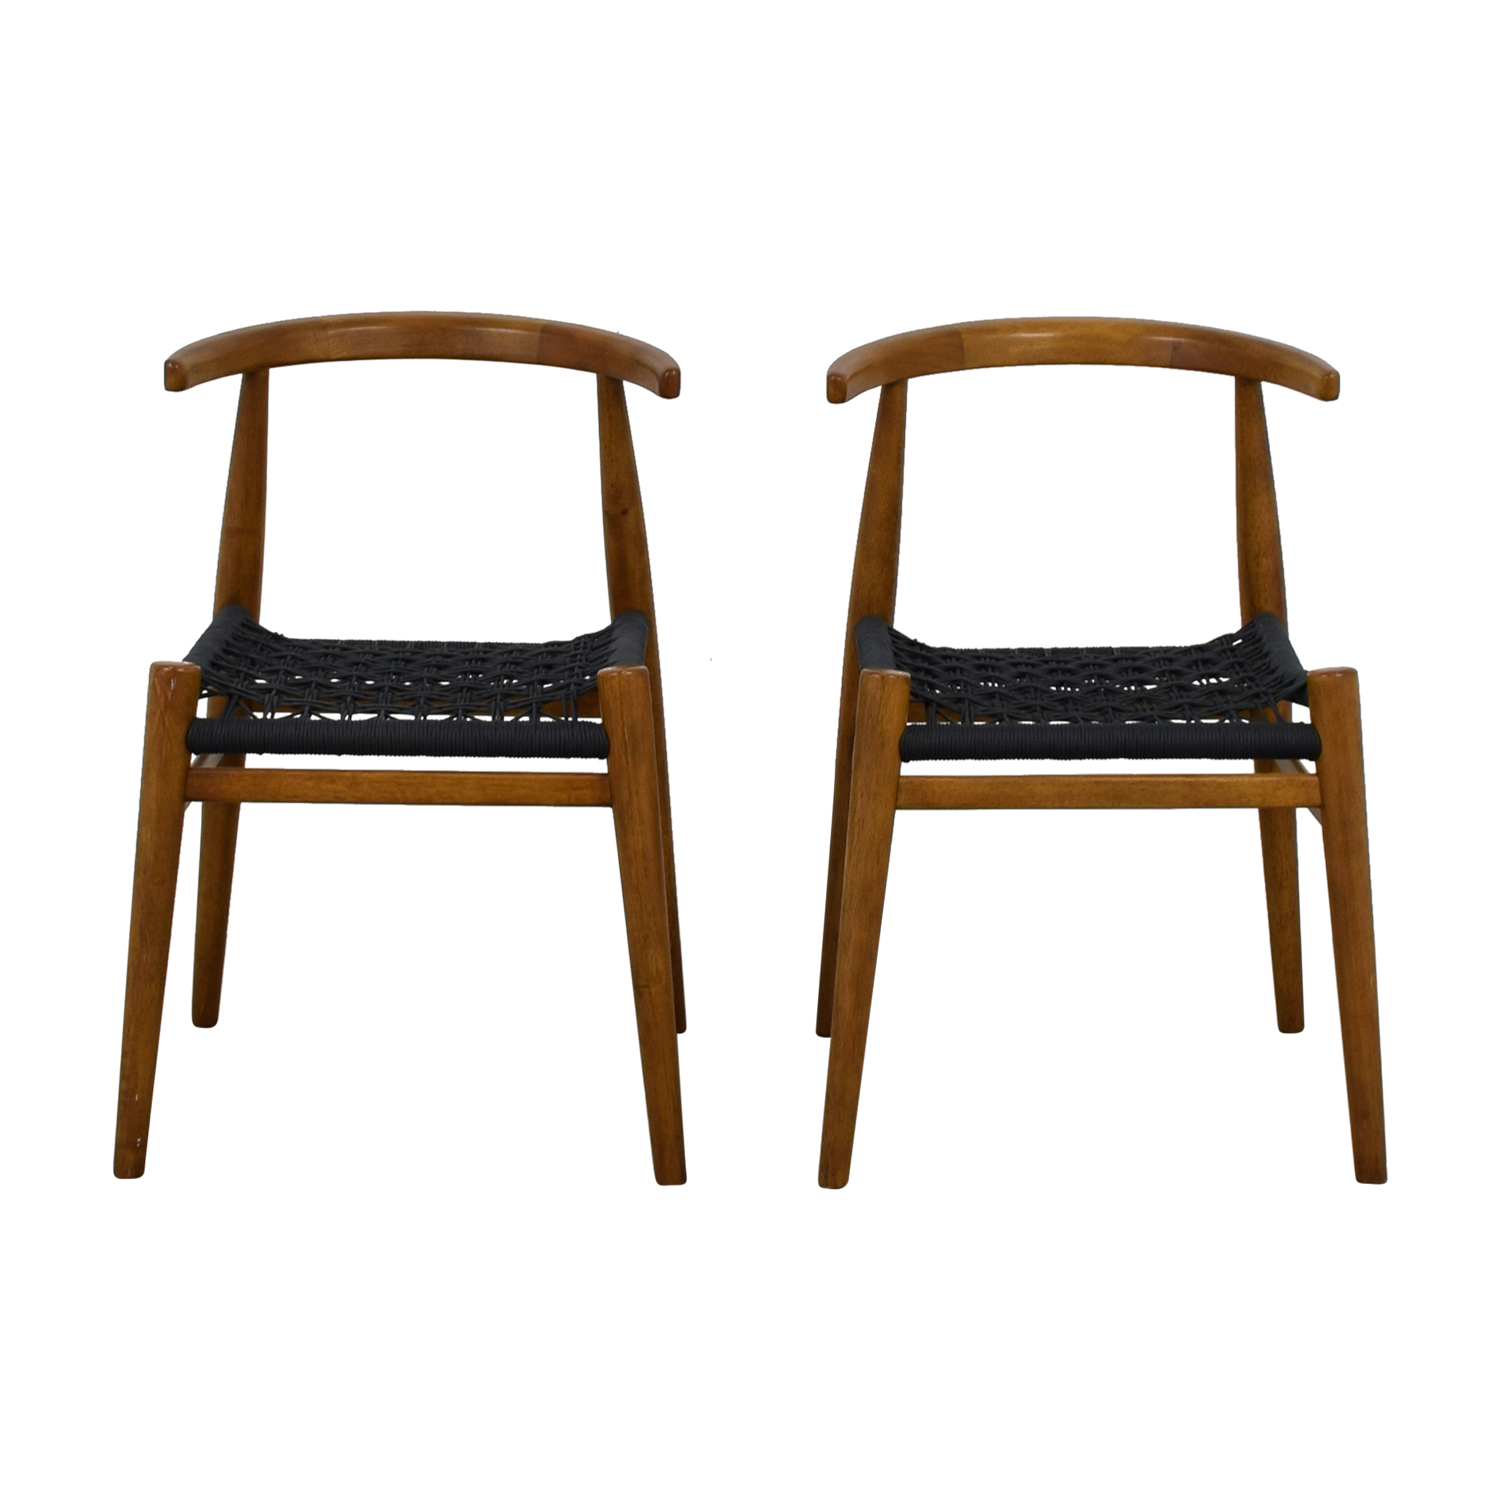 shop West Elm Acorn Wood and Charcoal Rope Dining Chairs West Elm Dining Chairs